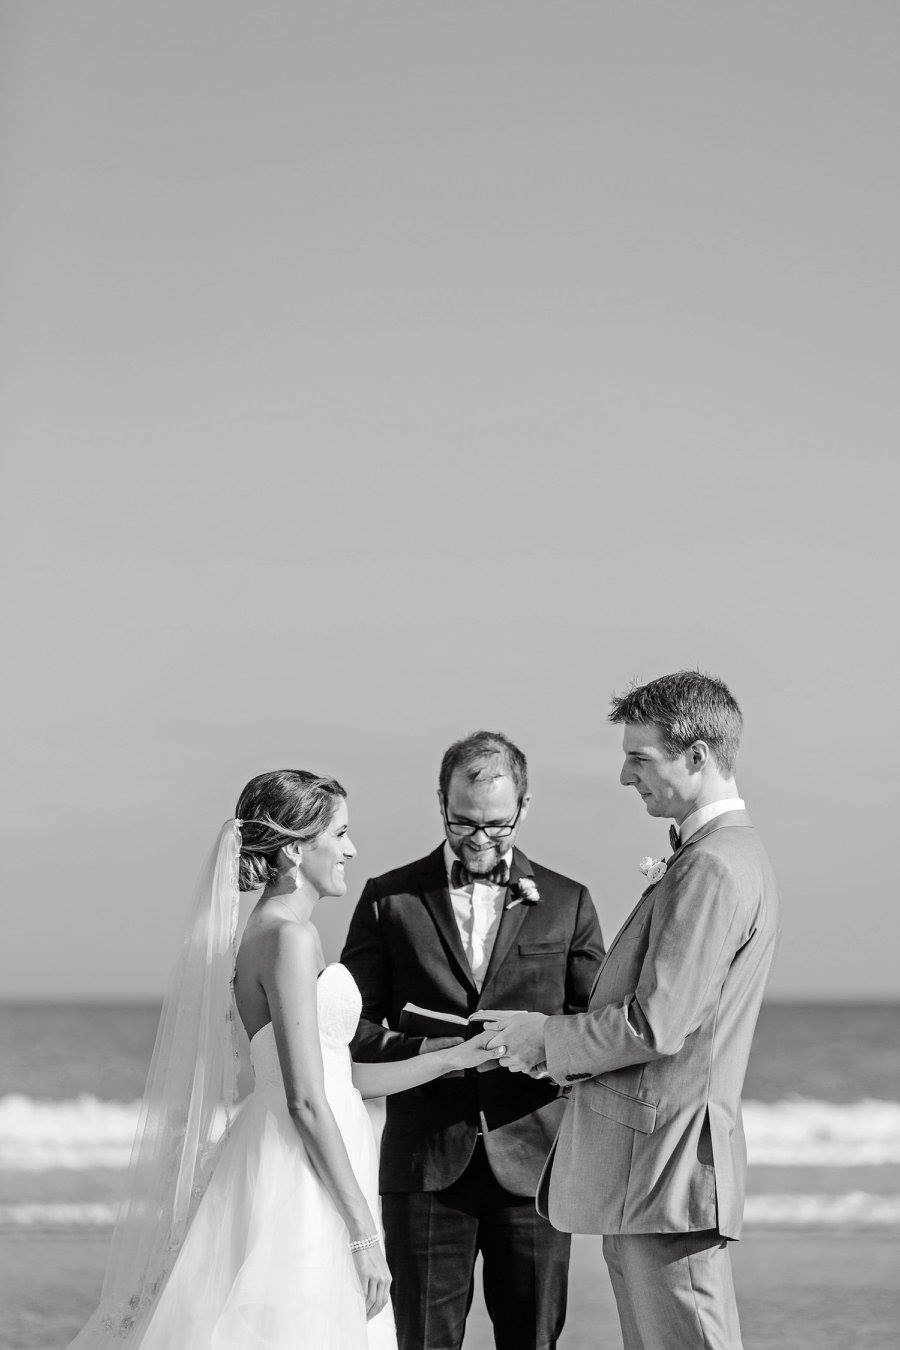 That is my sister Michelle and her husband David.  And me officiating their wedding with my moleskin sketchbook.  Photo credit:  Shannon Michele Photography